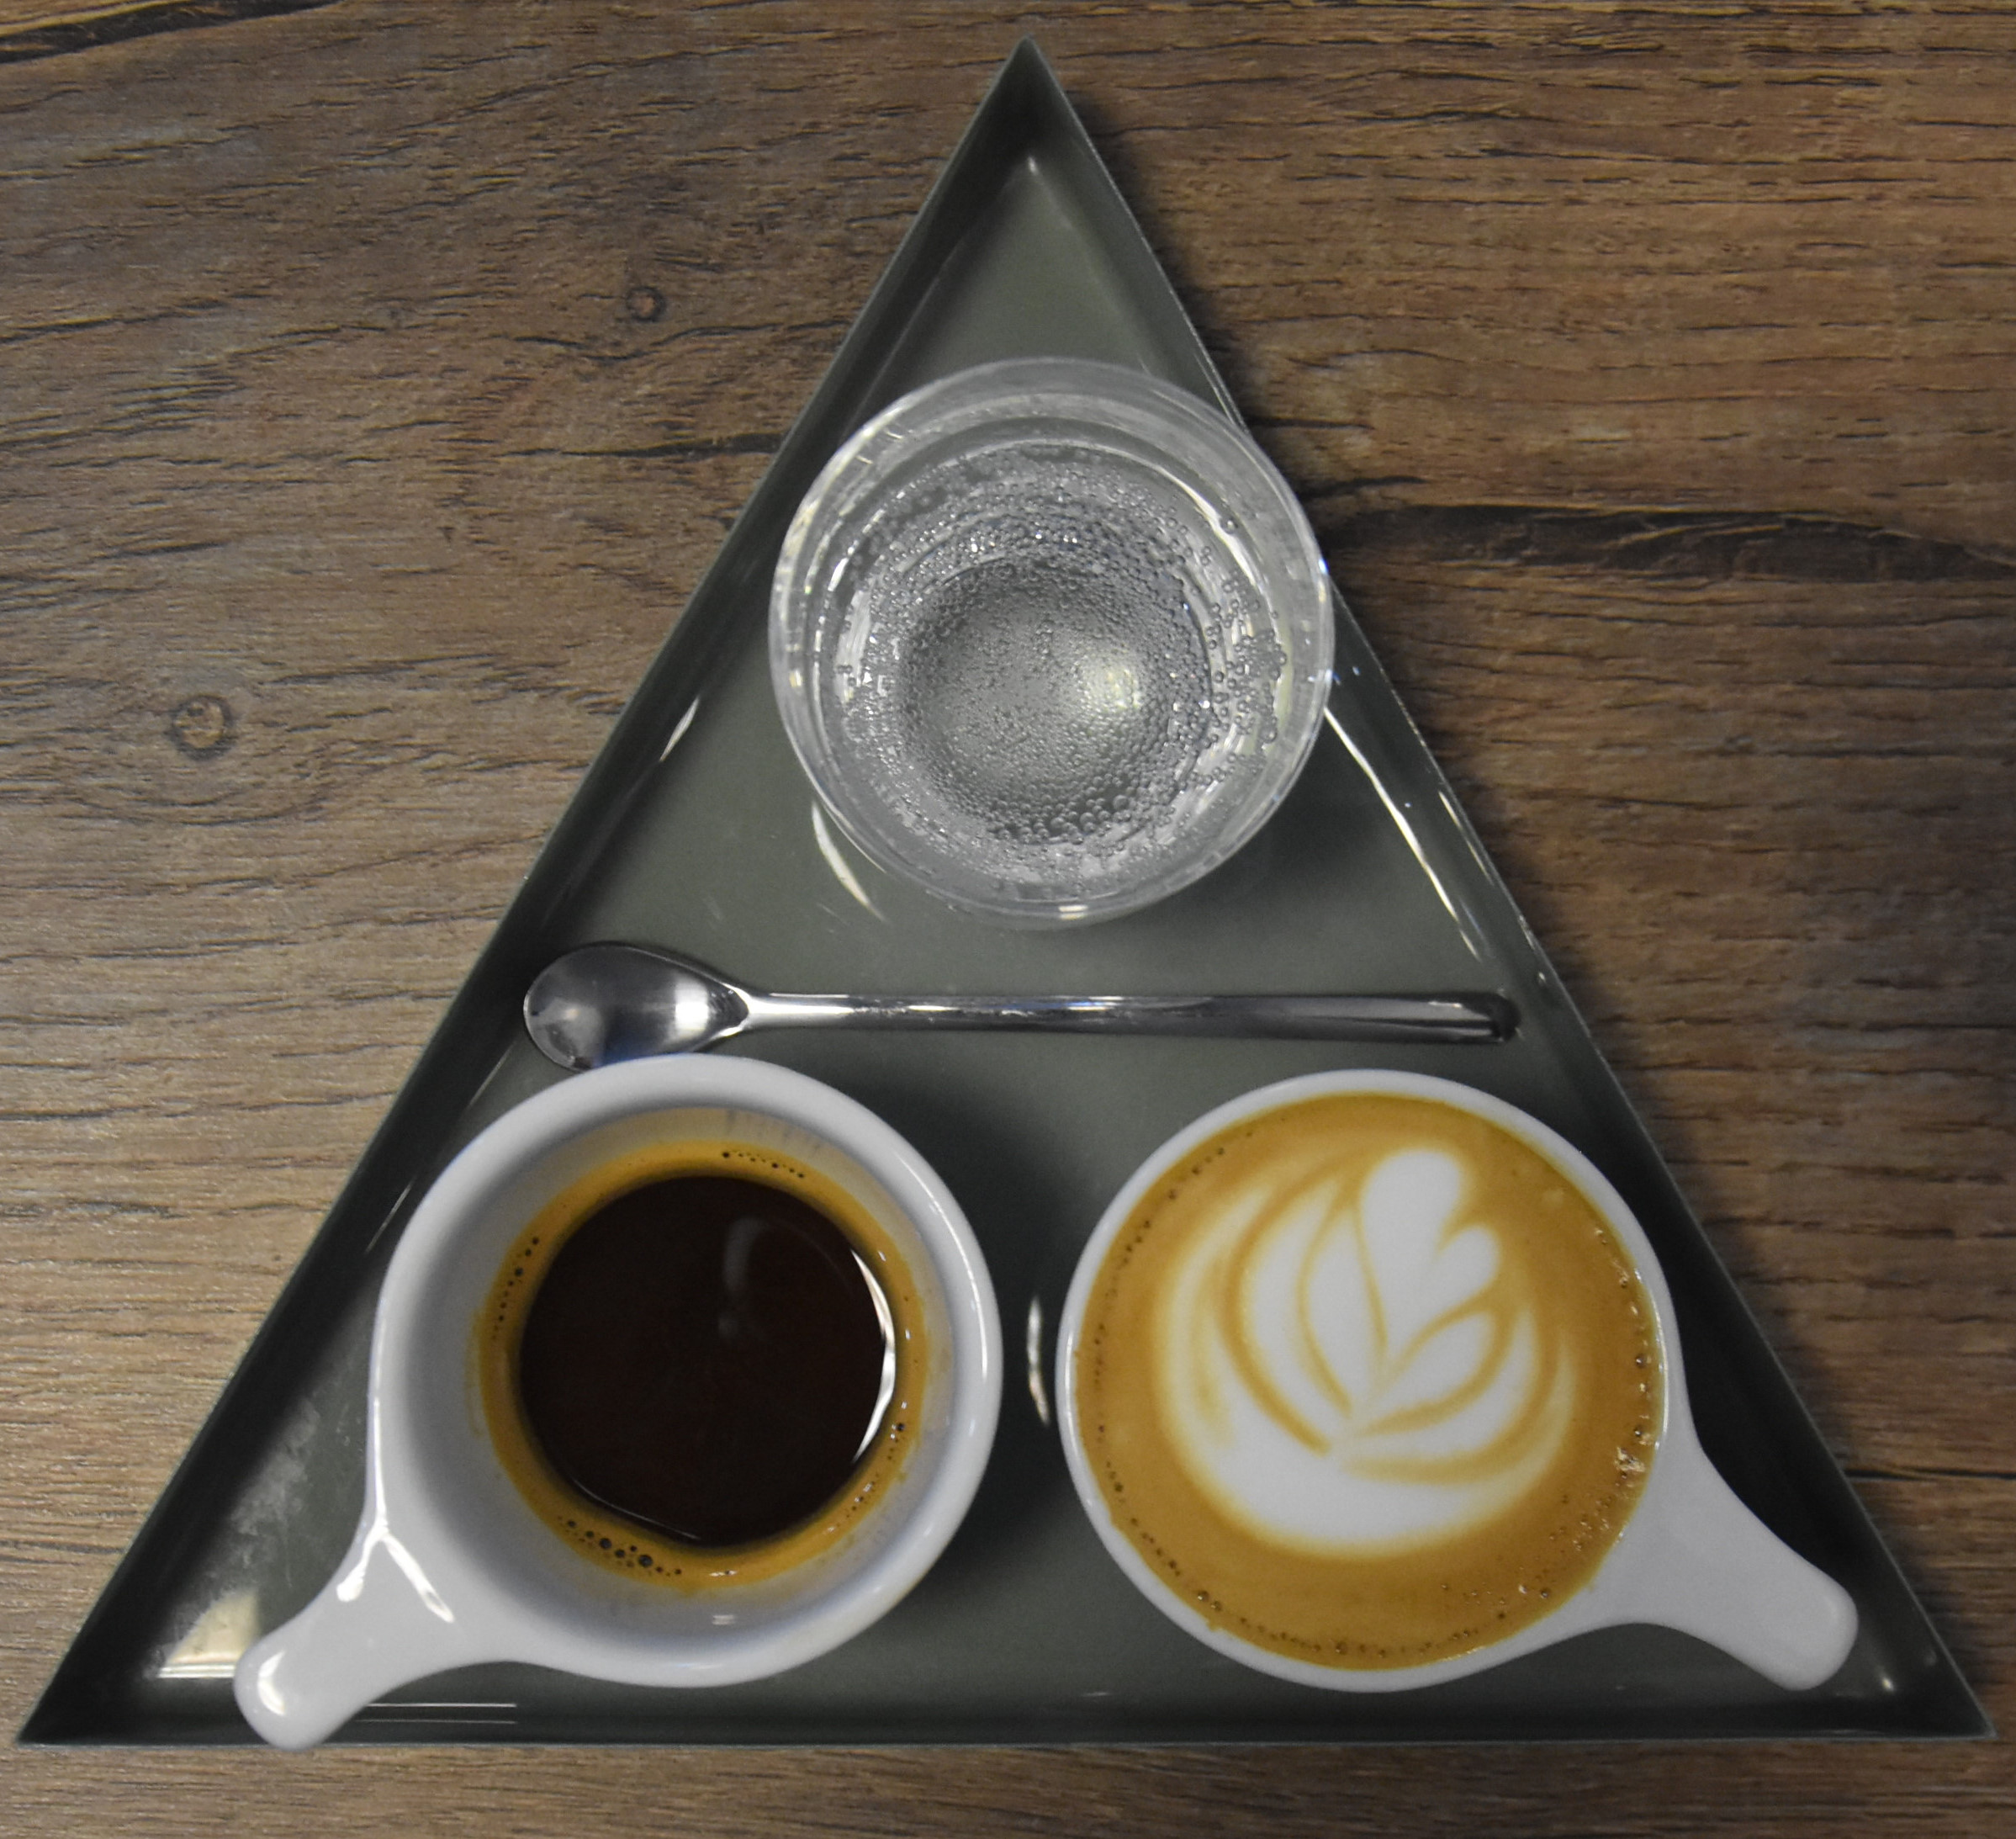 A lovely one-and-one (espresso and macchiato) plus a glass of sparkling water, beautifully presented on a triangular tray at Mythical Coffee in Gilbert, Arizona.